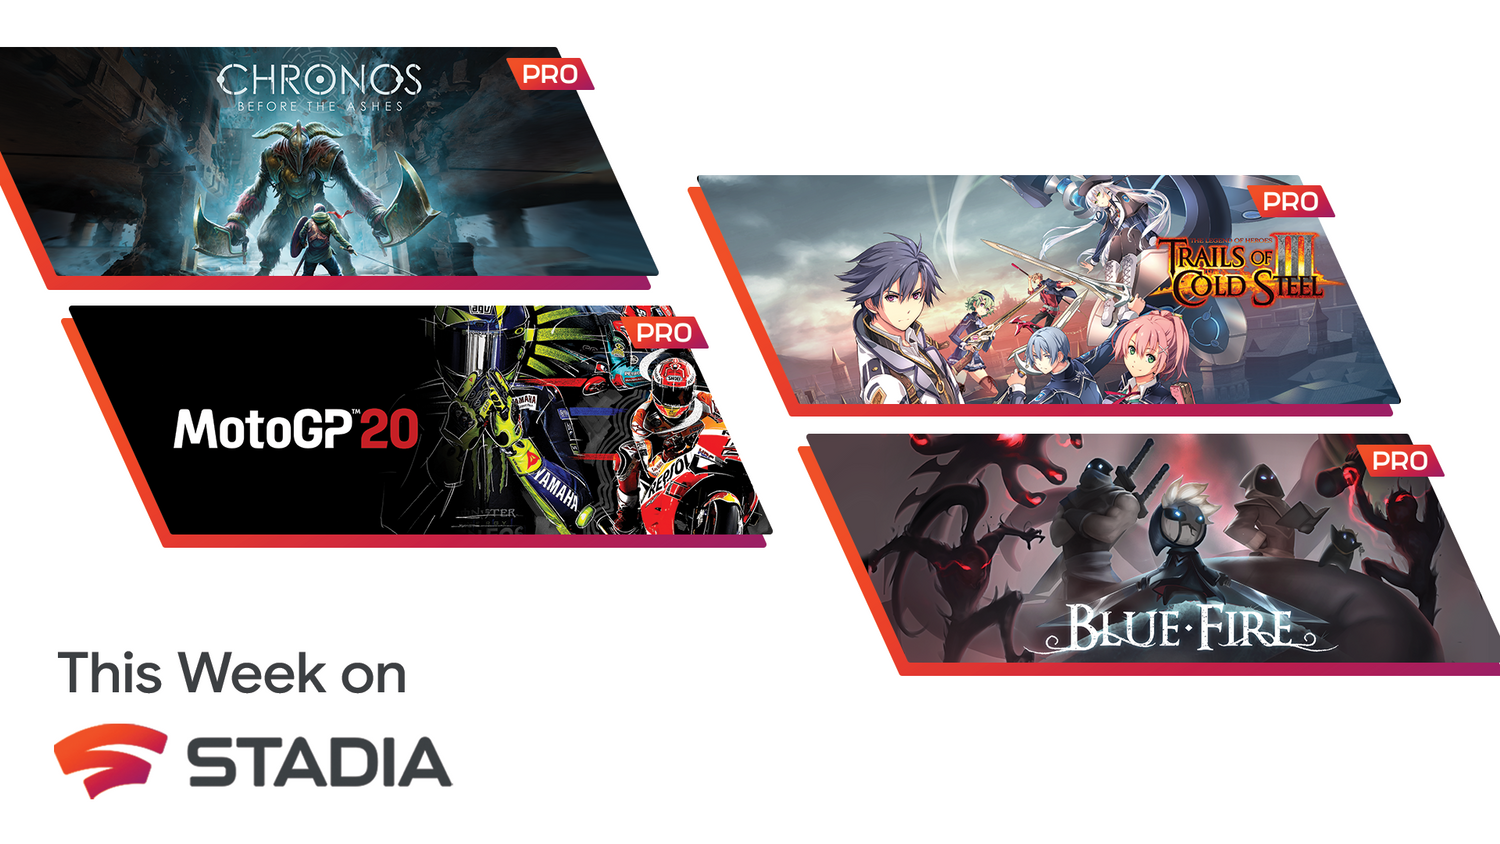 [Claim] Your Stadia Pro games for June include Chronos: Before the Ashes, MotoGP20, more